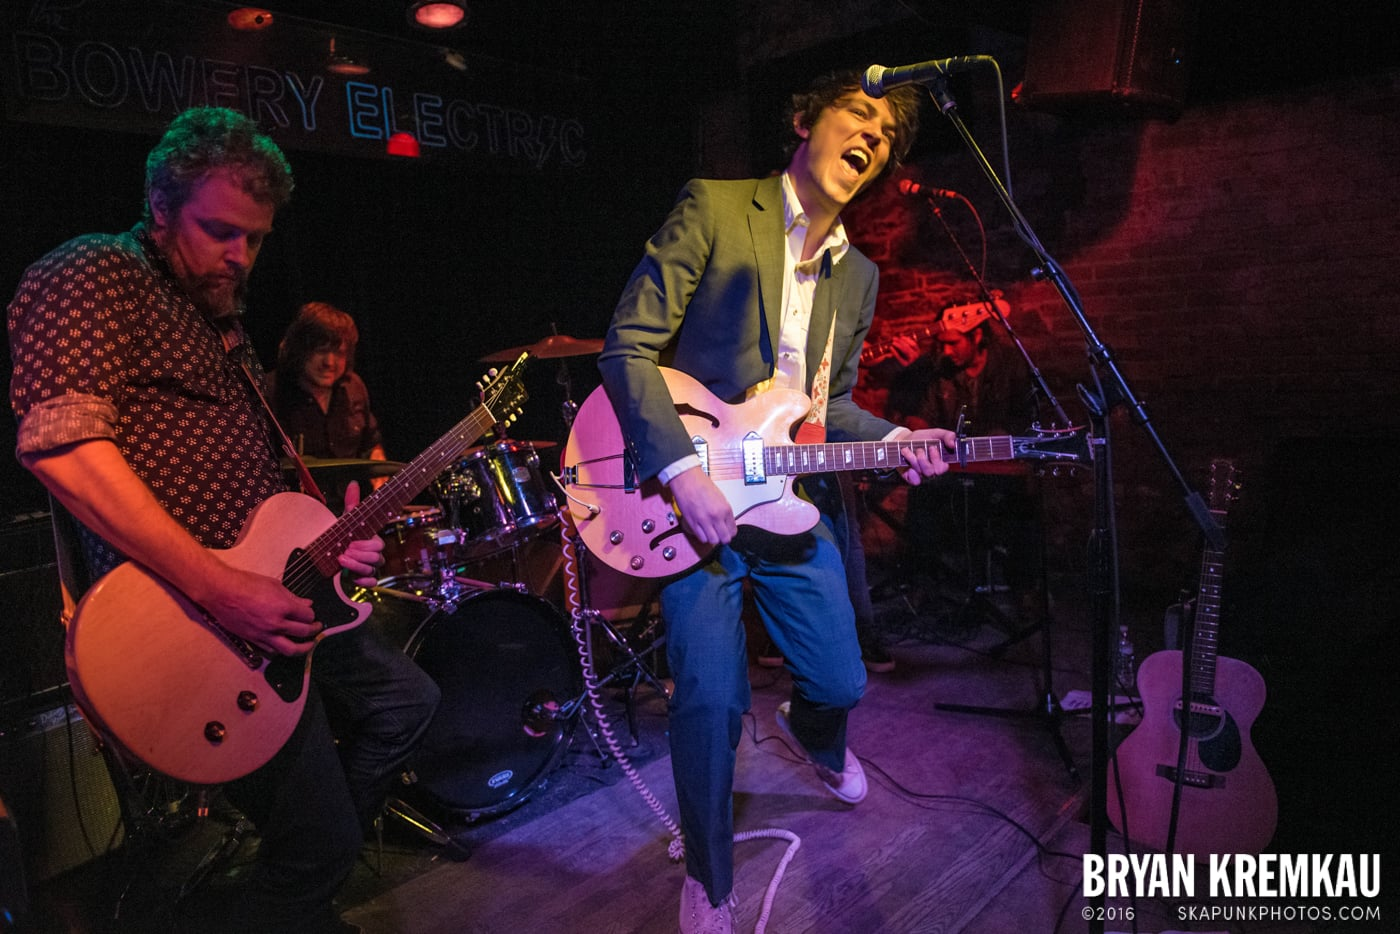 Trapper Schoepp & The Shades @ Bowery Electric, NYC - 11.20.14 (48)